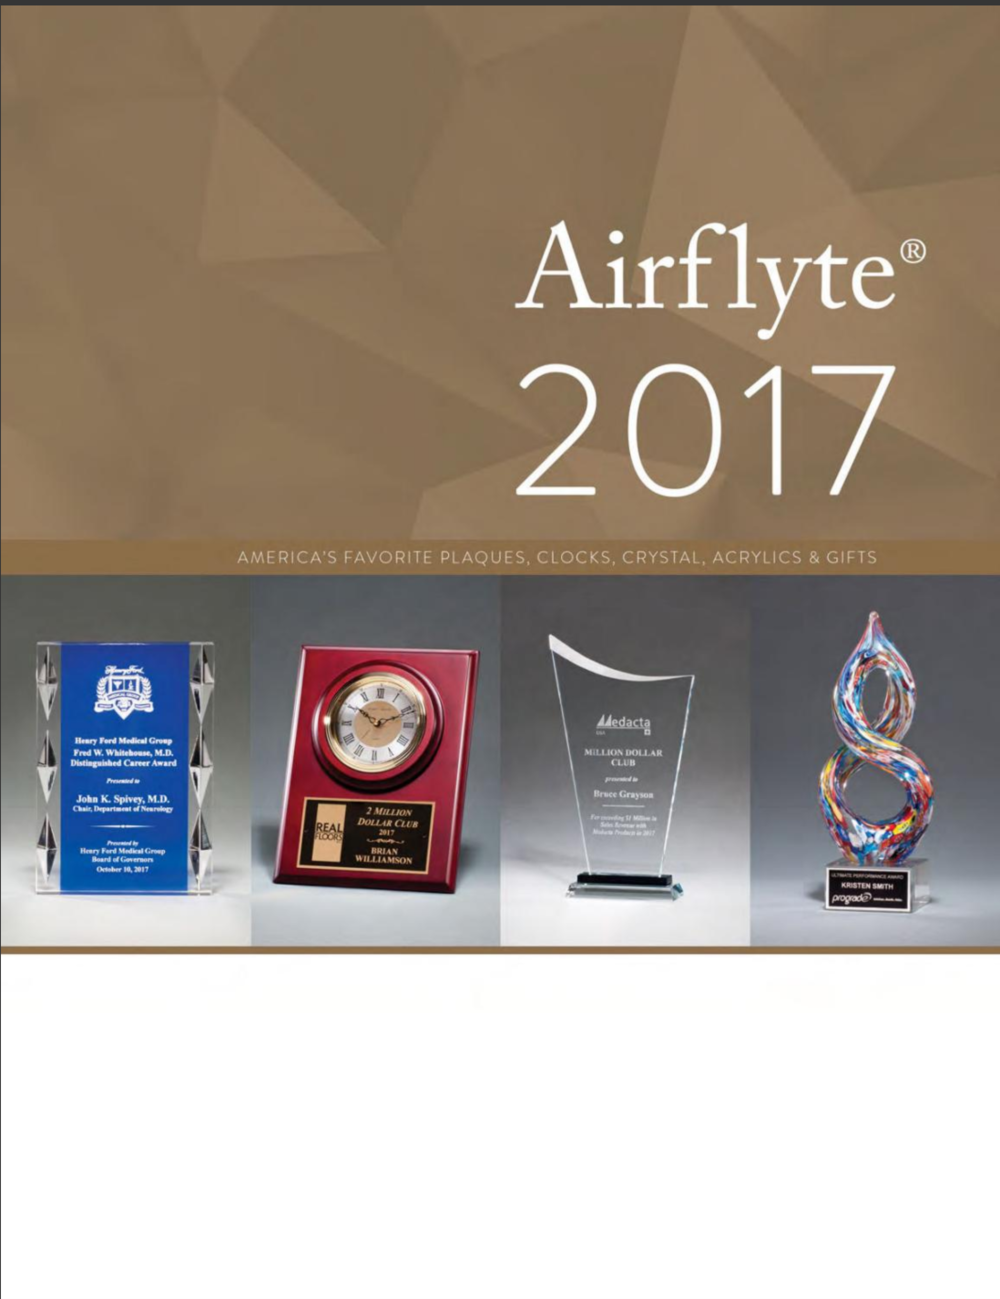 Airflyte